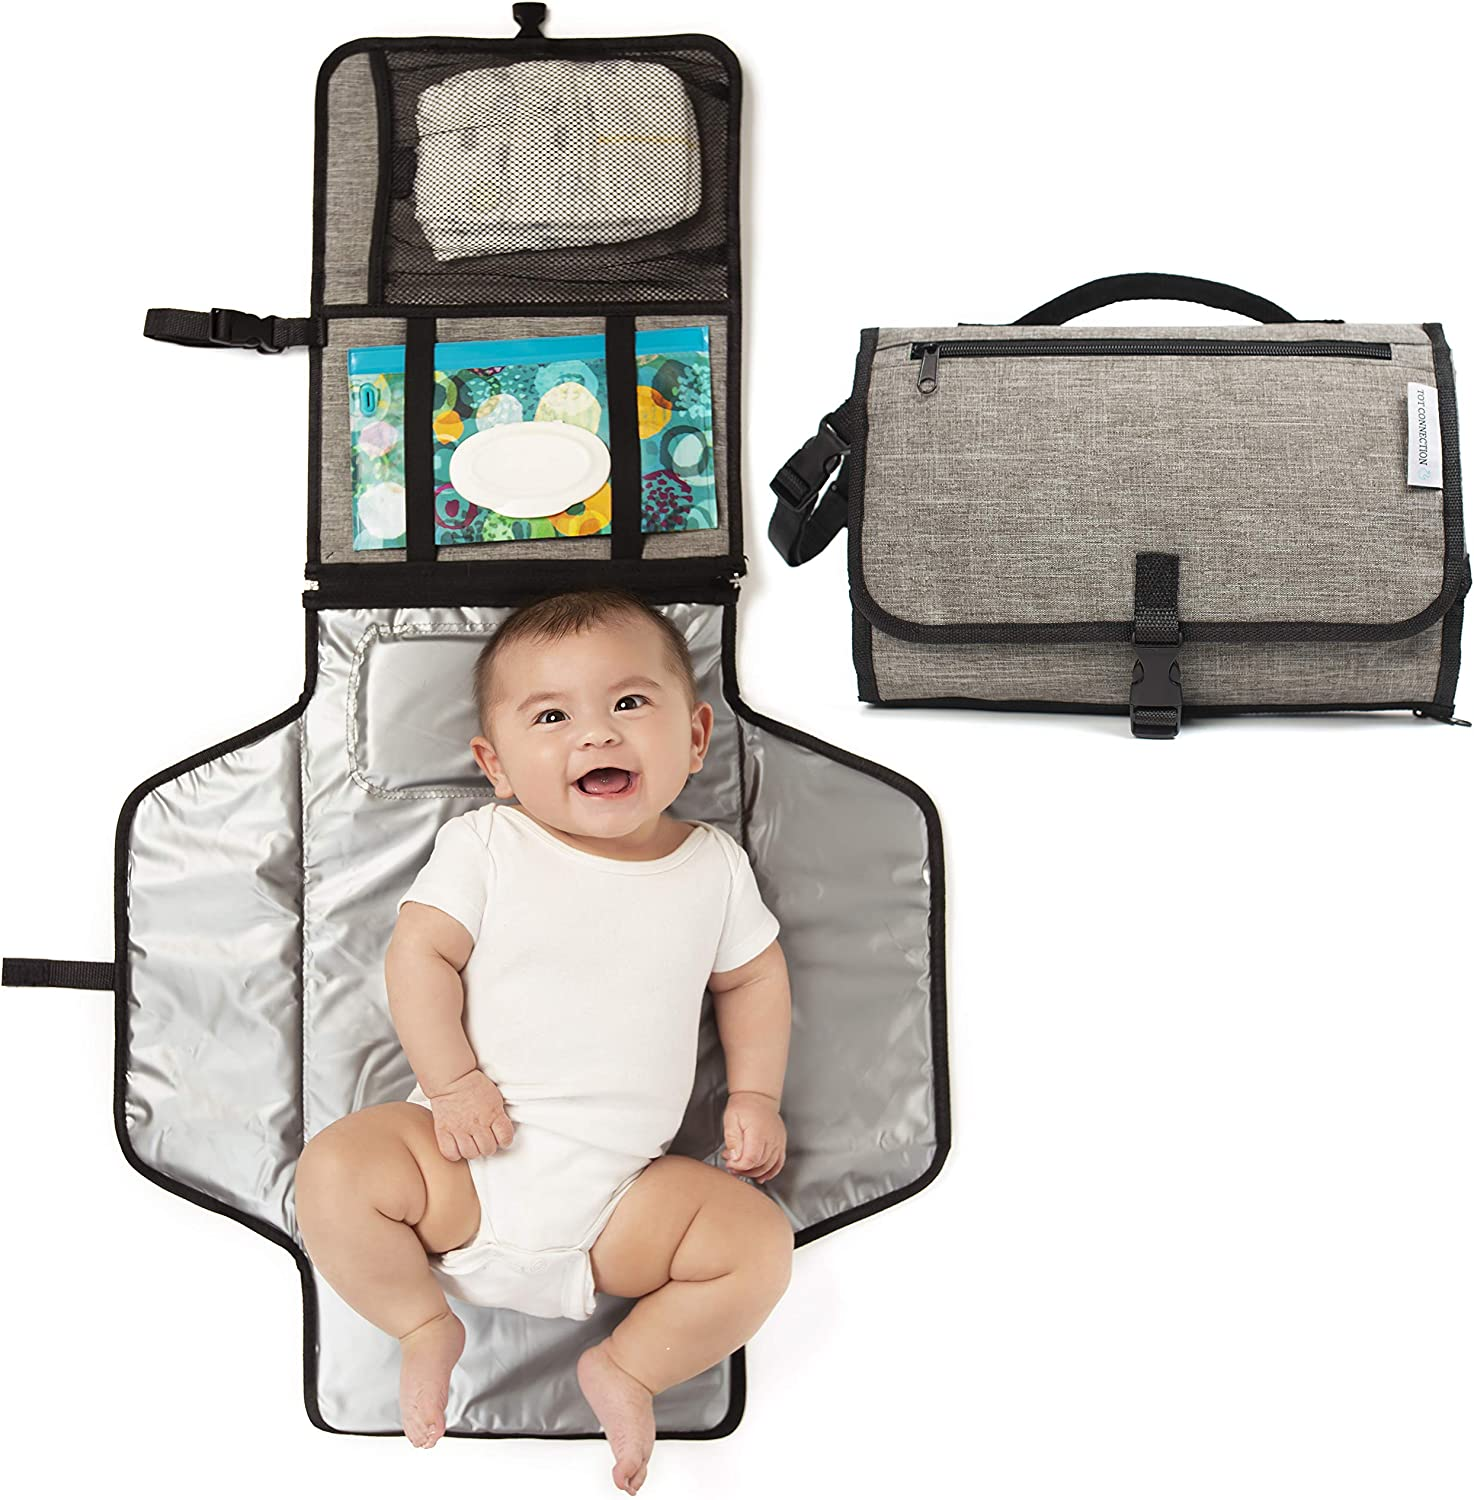 Portable Baby Changing Pad, Unisex Waterproof Diaper Bag With Built-in Head Cushion, Travel Changing Station for Toddlers Infants and Newborns